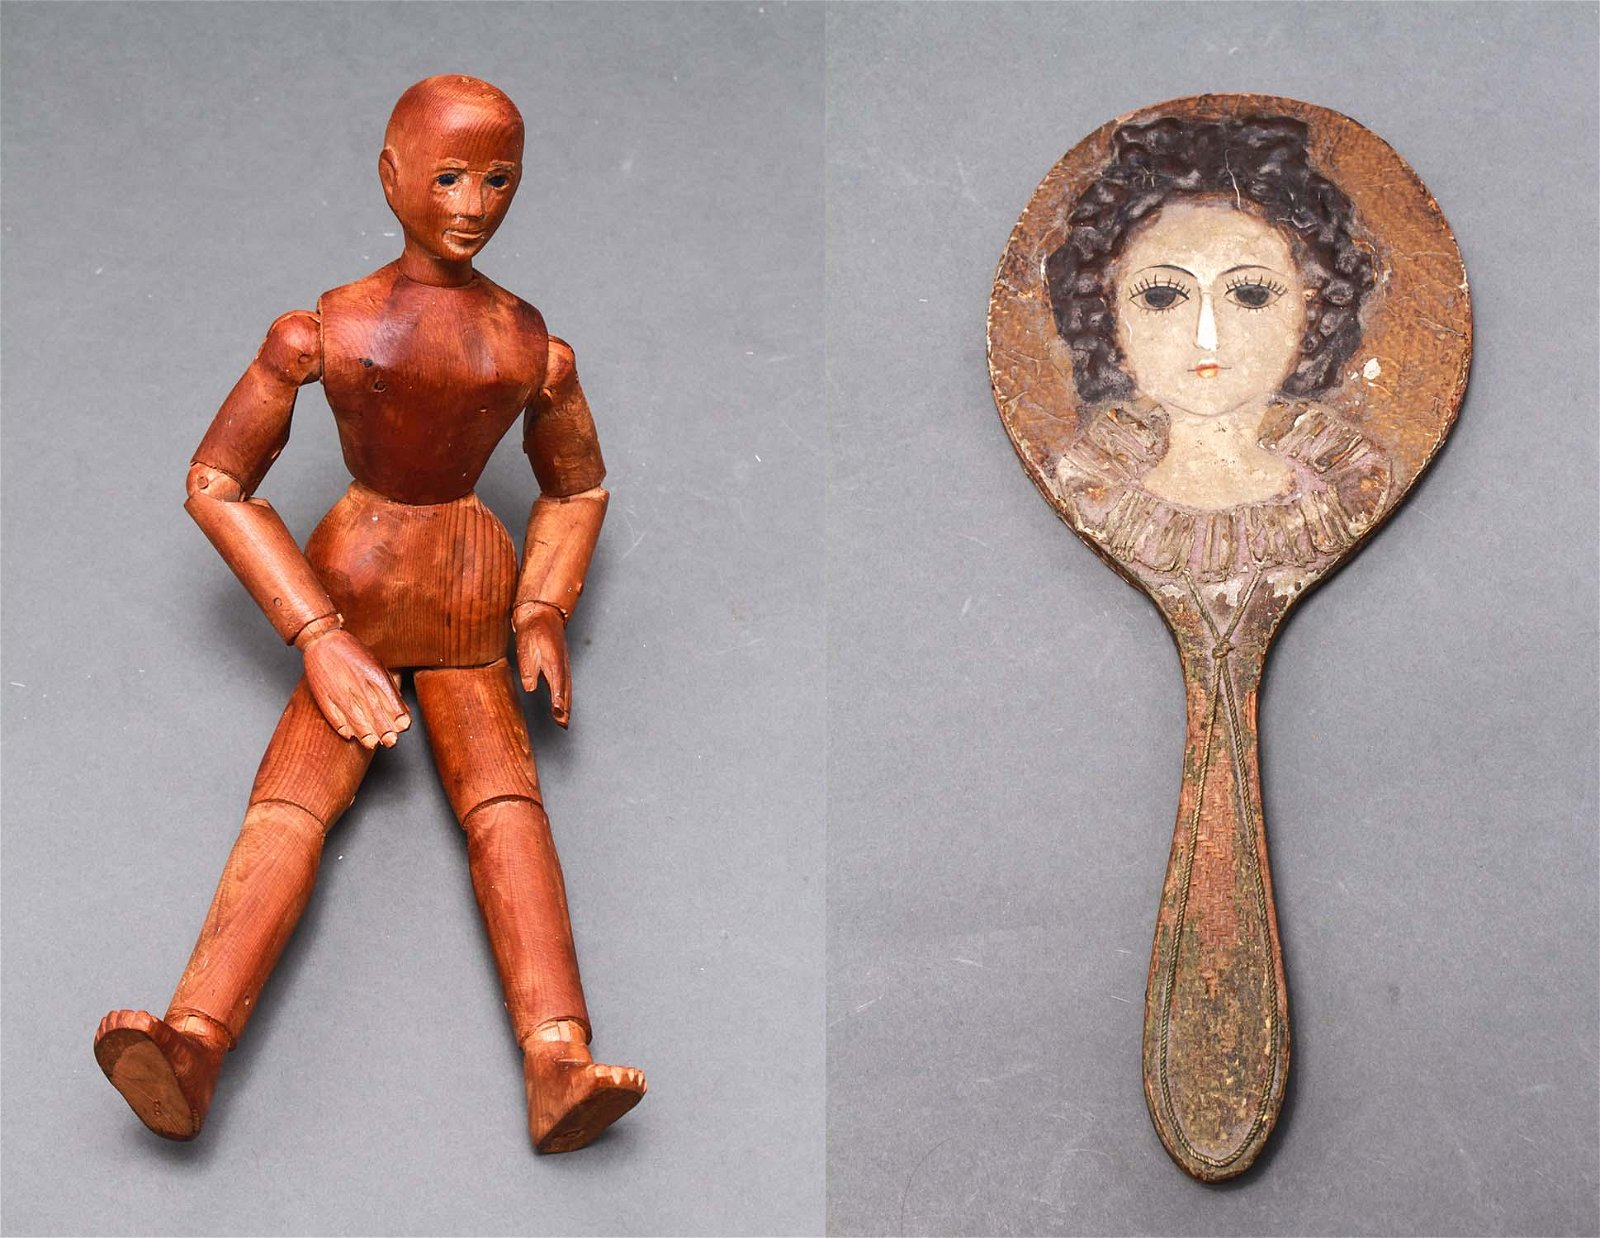 Artist's Articulated Carved Wood Figure & Mirror